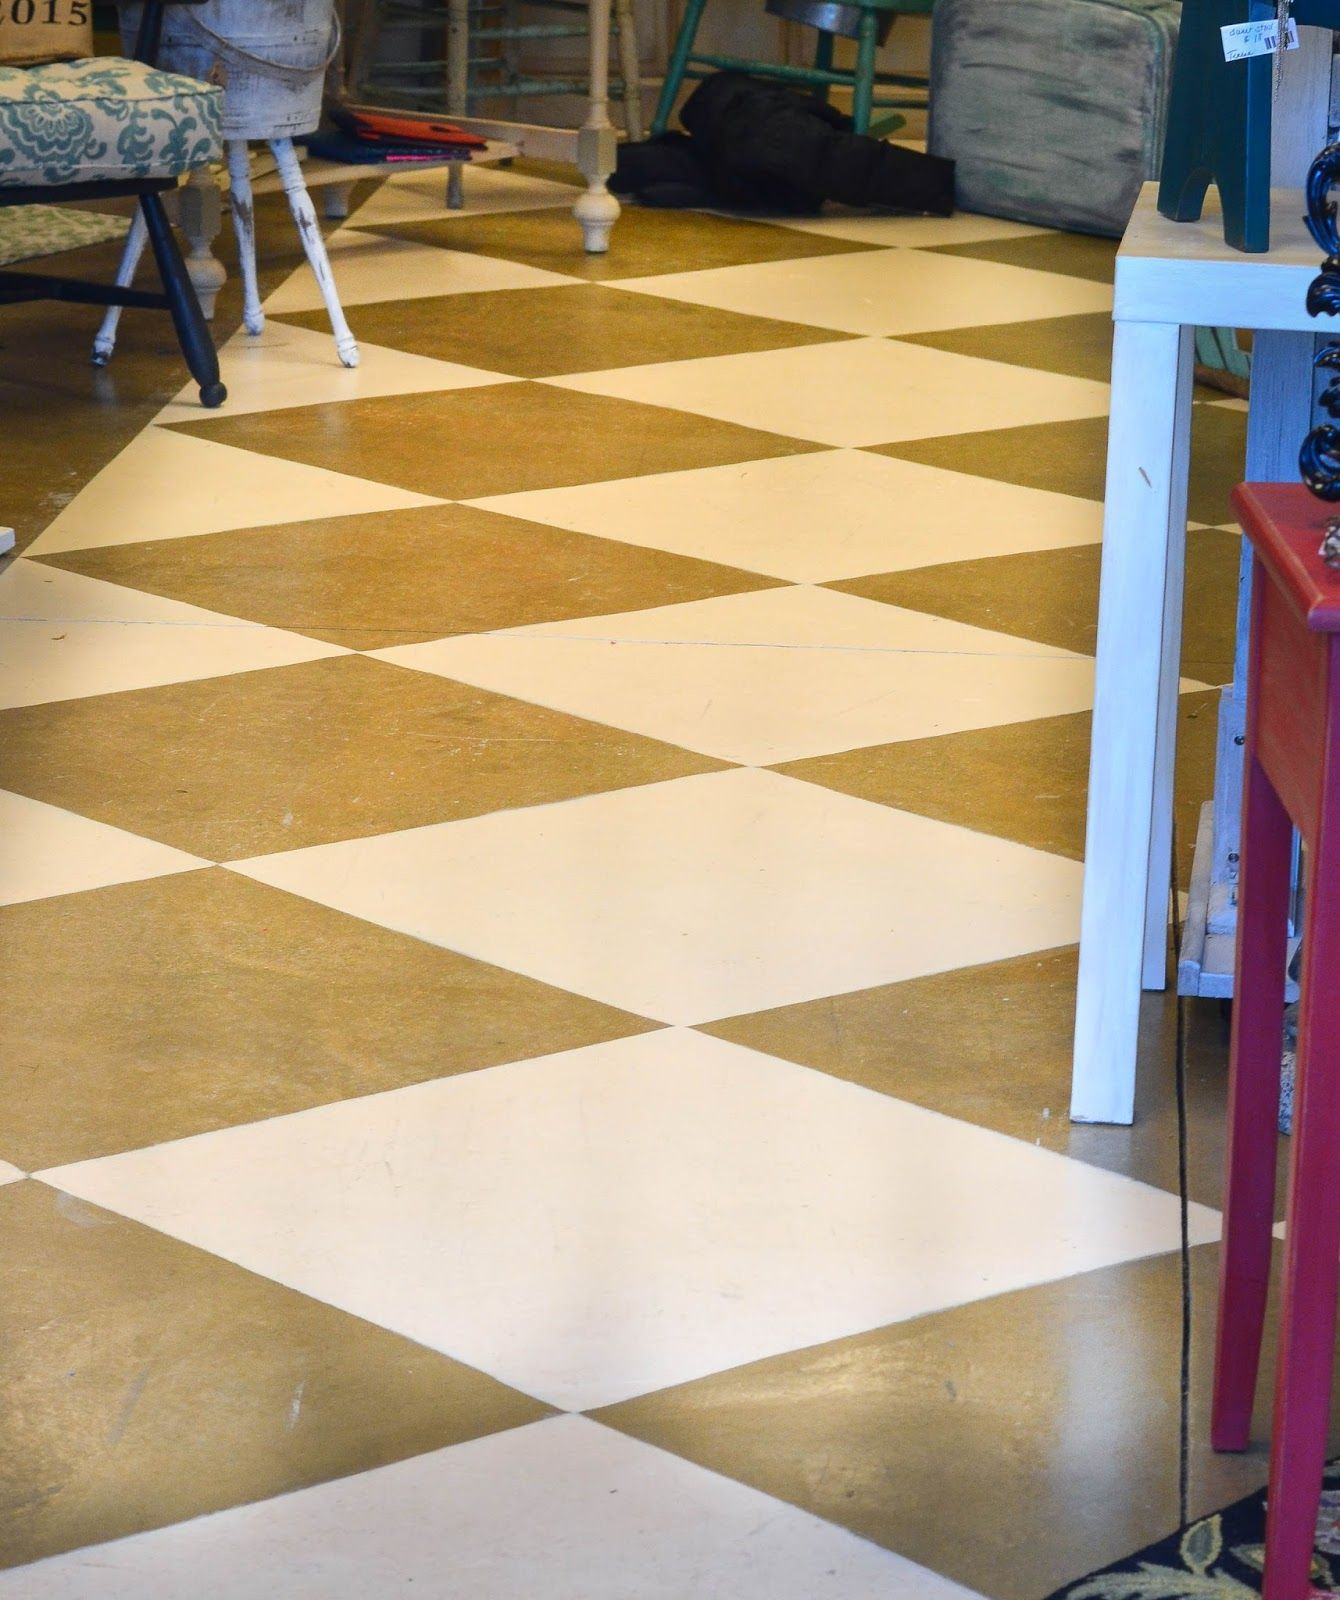 Cement diamond painted floors and shop pics diamond paint painted painted concrete floor a diamond pattern painted over the existing floor finish this is an inexpensive way to give your floors a new look dailygadgetfo Images